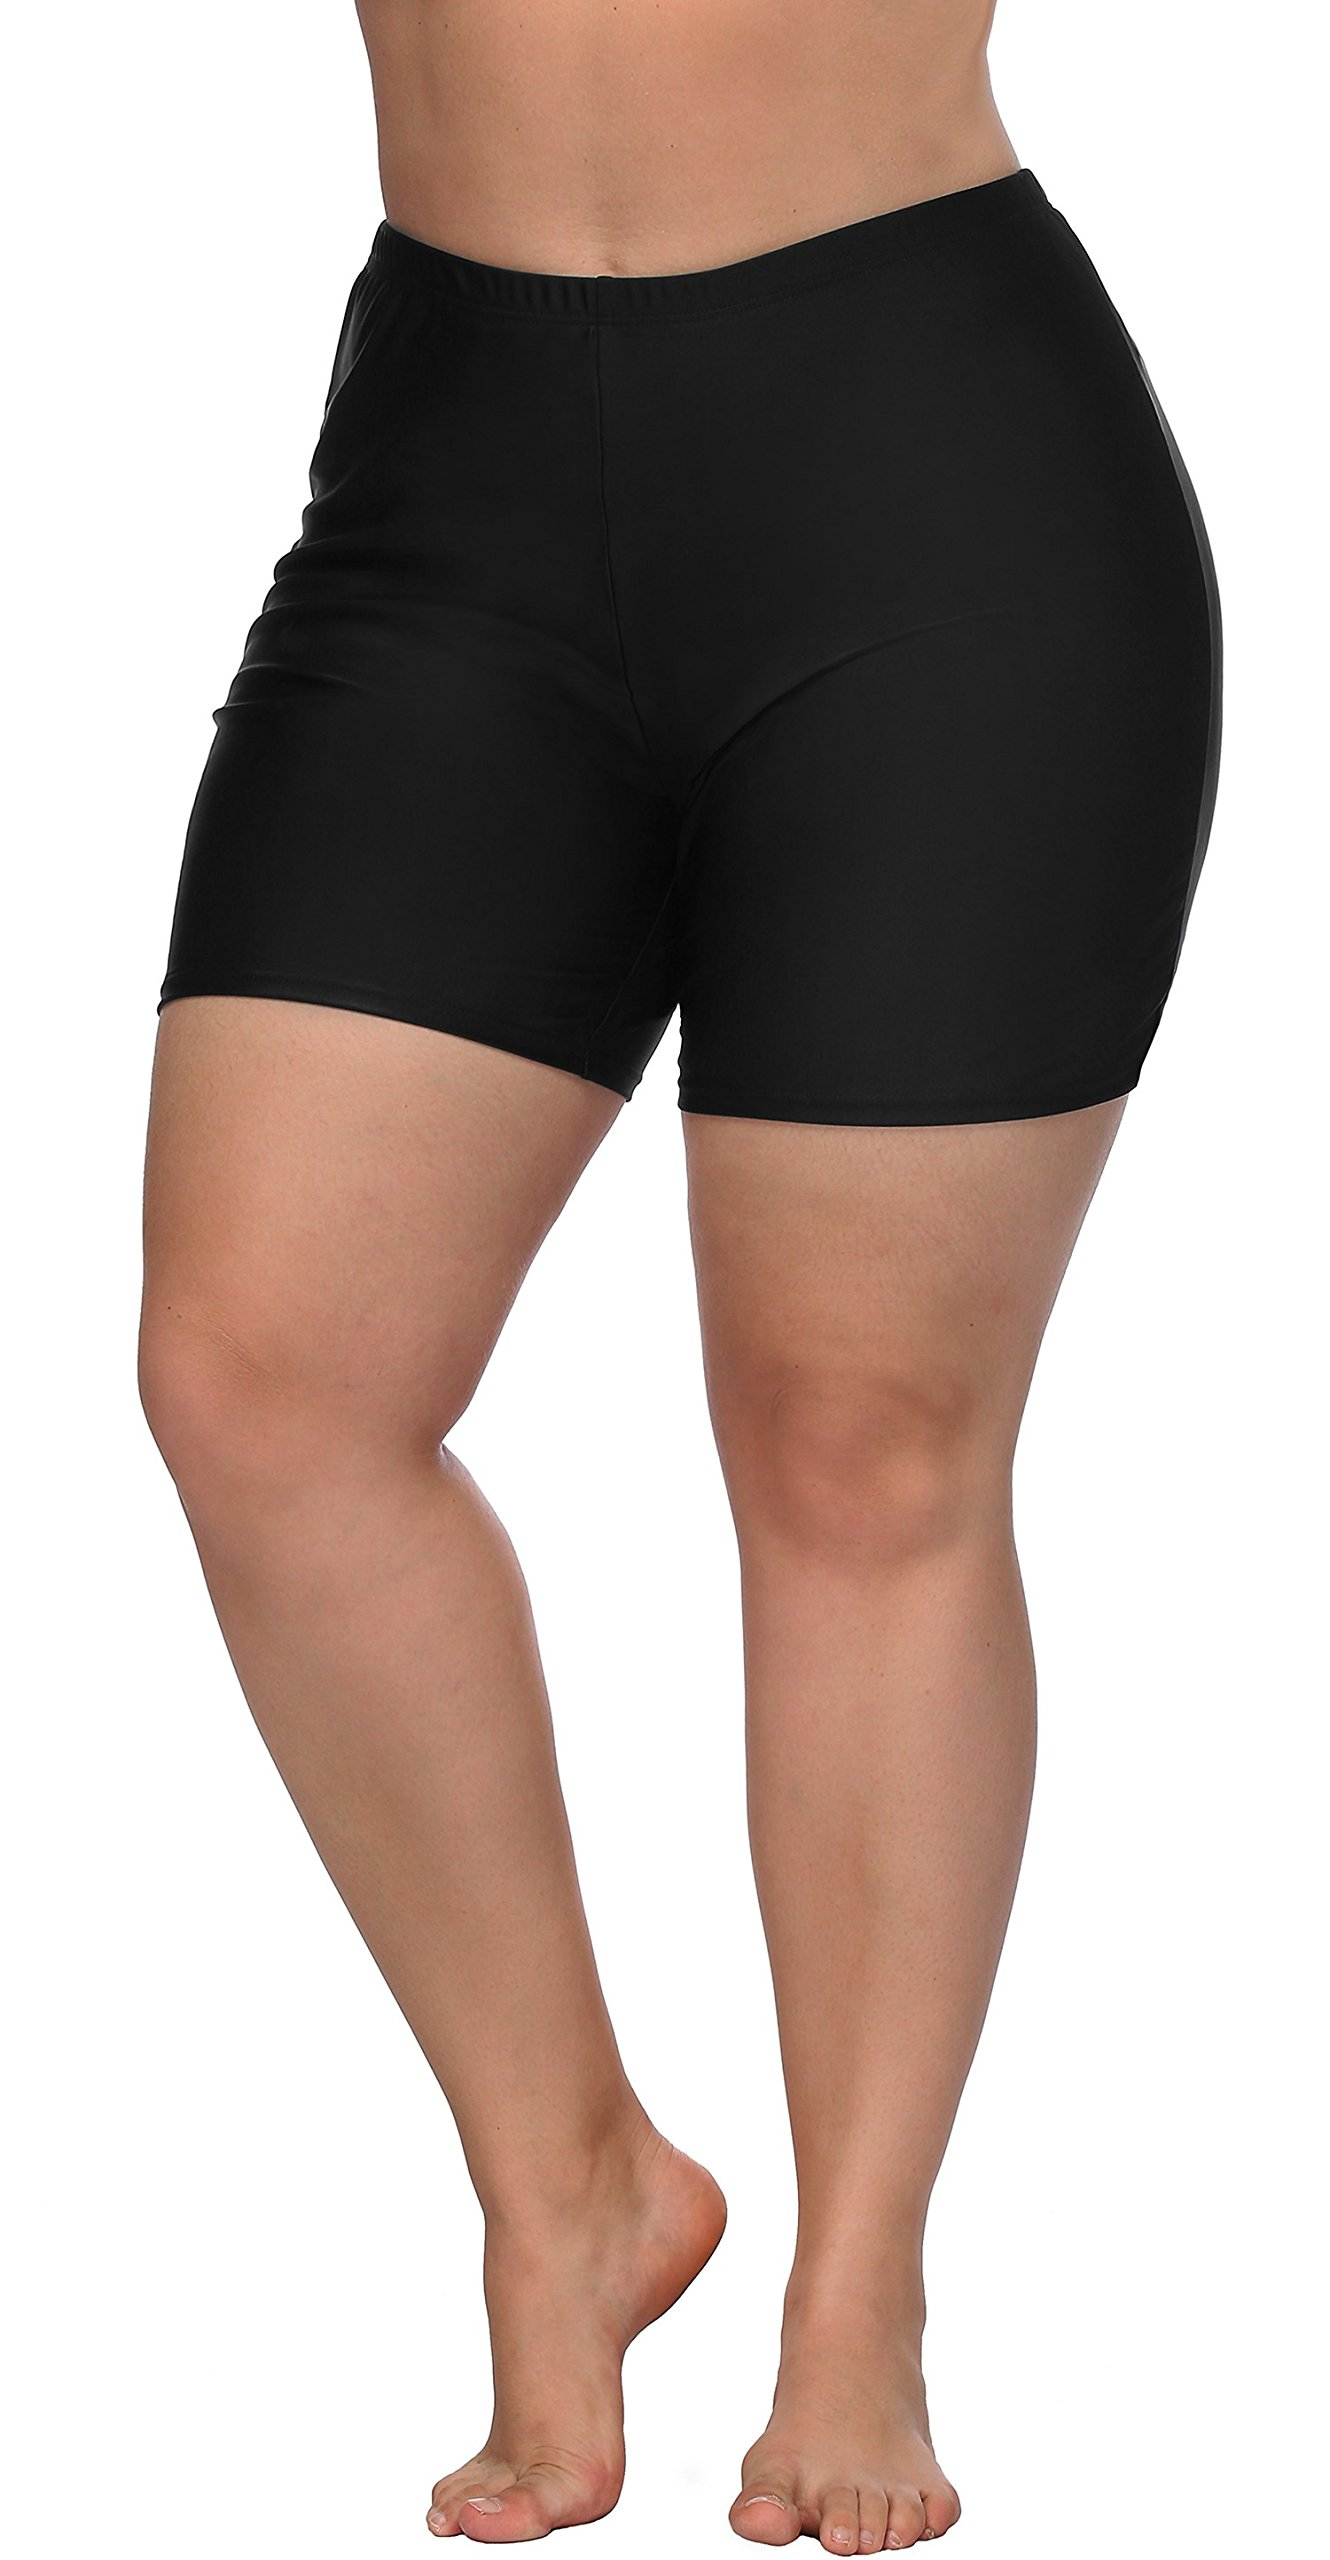 ATTRACO Ladies Boardshorts Plus Size Solid Stretch Swimwear Bottoms Black 2X